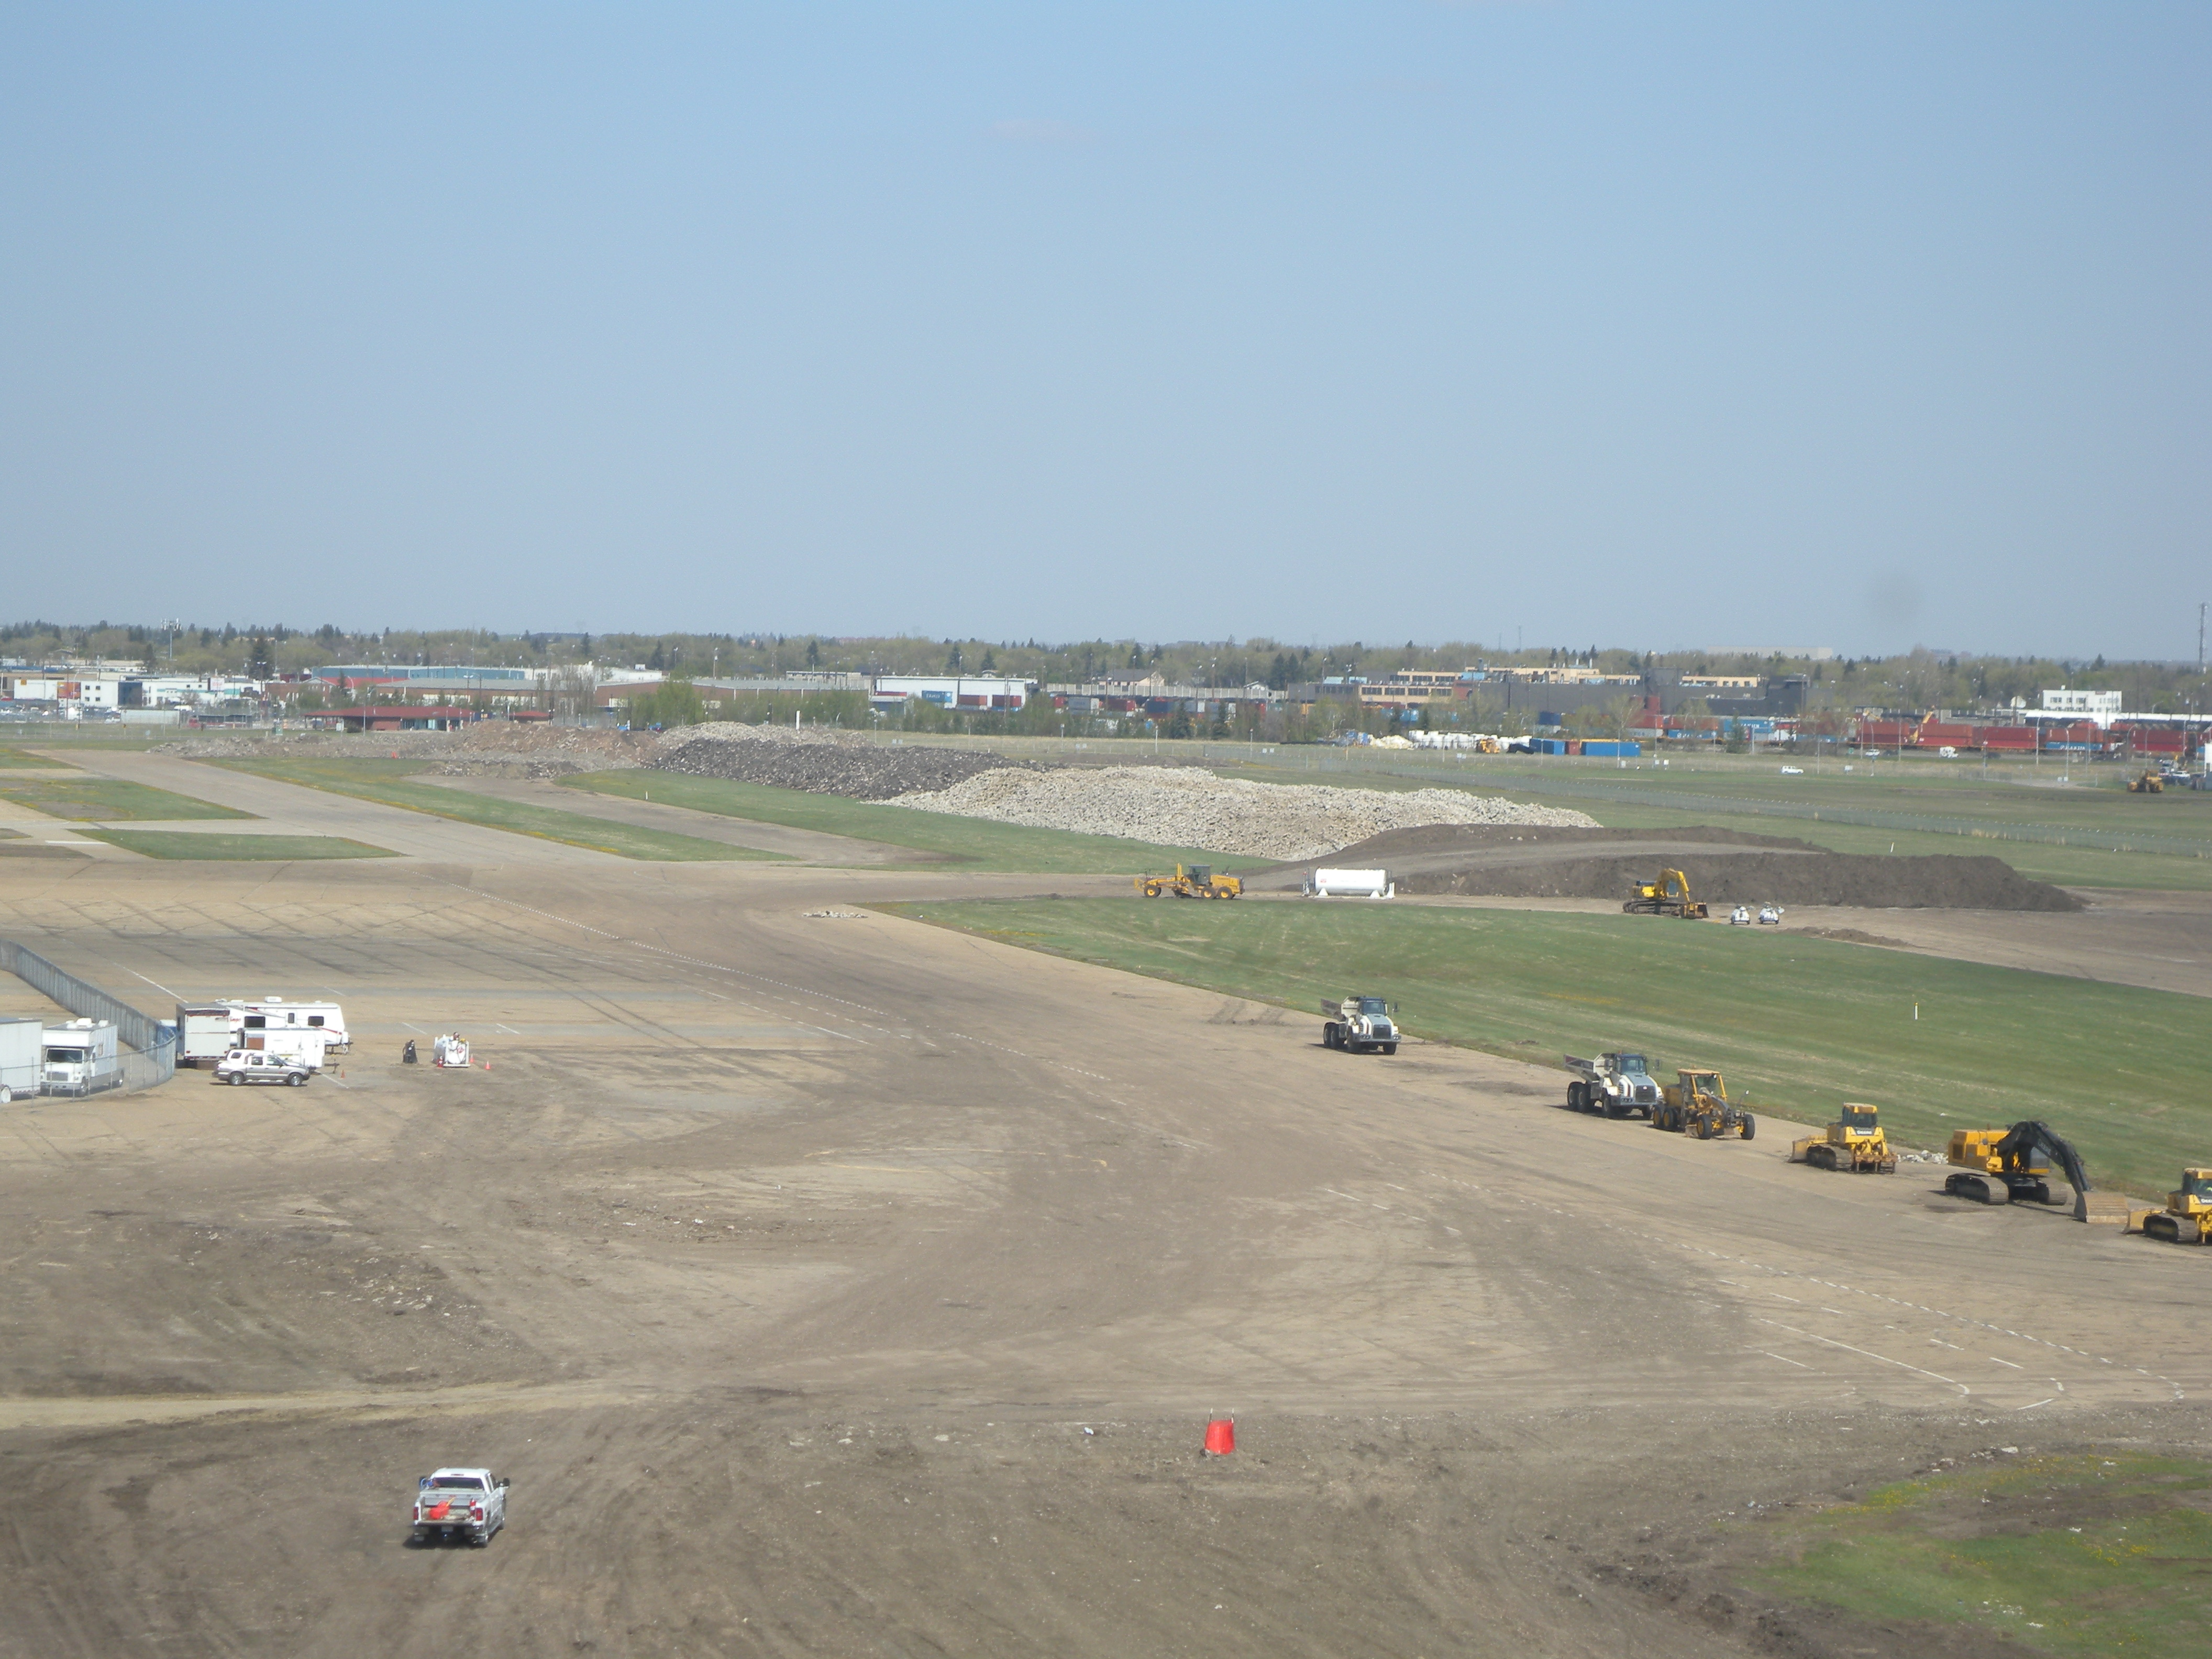 Blue apron edmonton - Approximately 1 3 Of The Runways And Taxiways Have Been Removed And Stockpiled At The Site The Materials Concrete Asphalt And Gravel Will Eventually Be